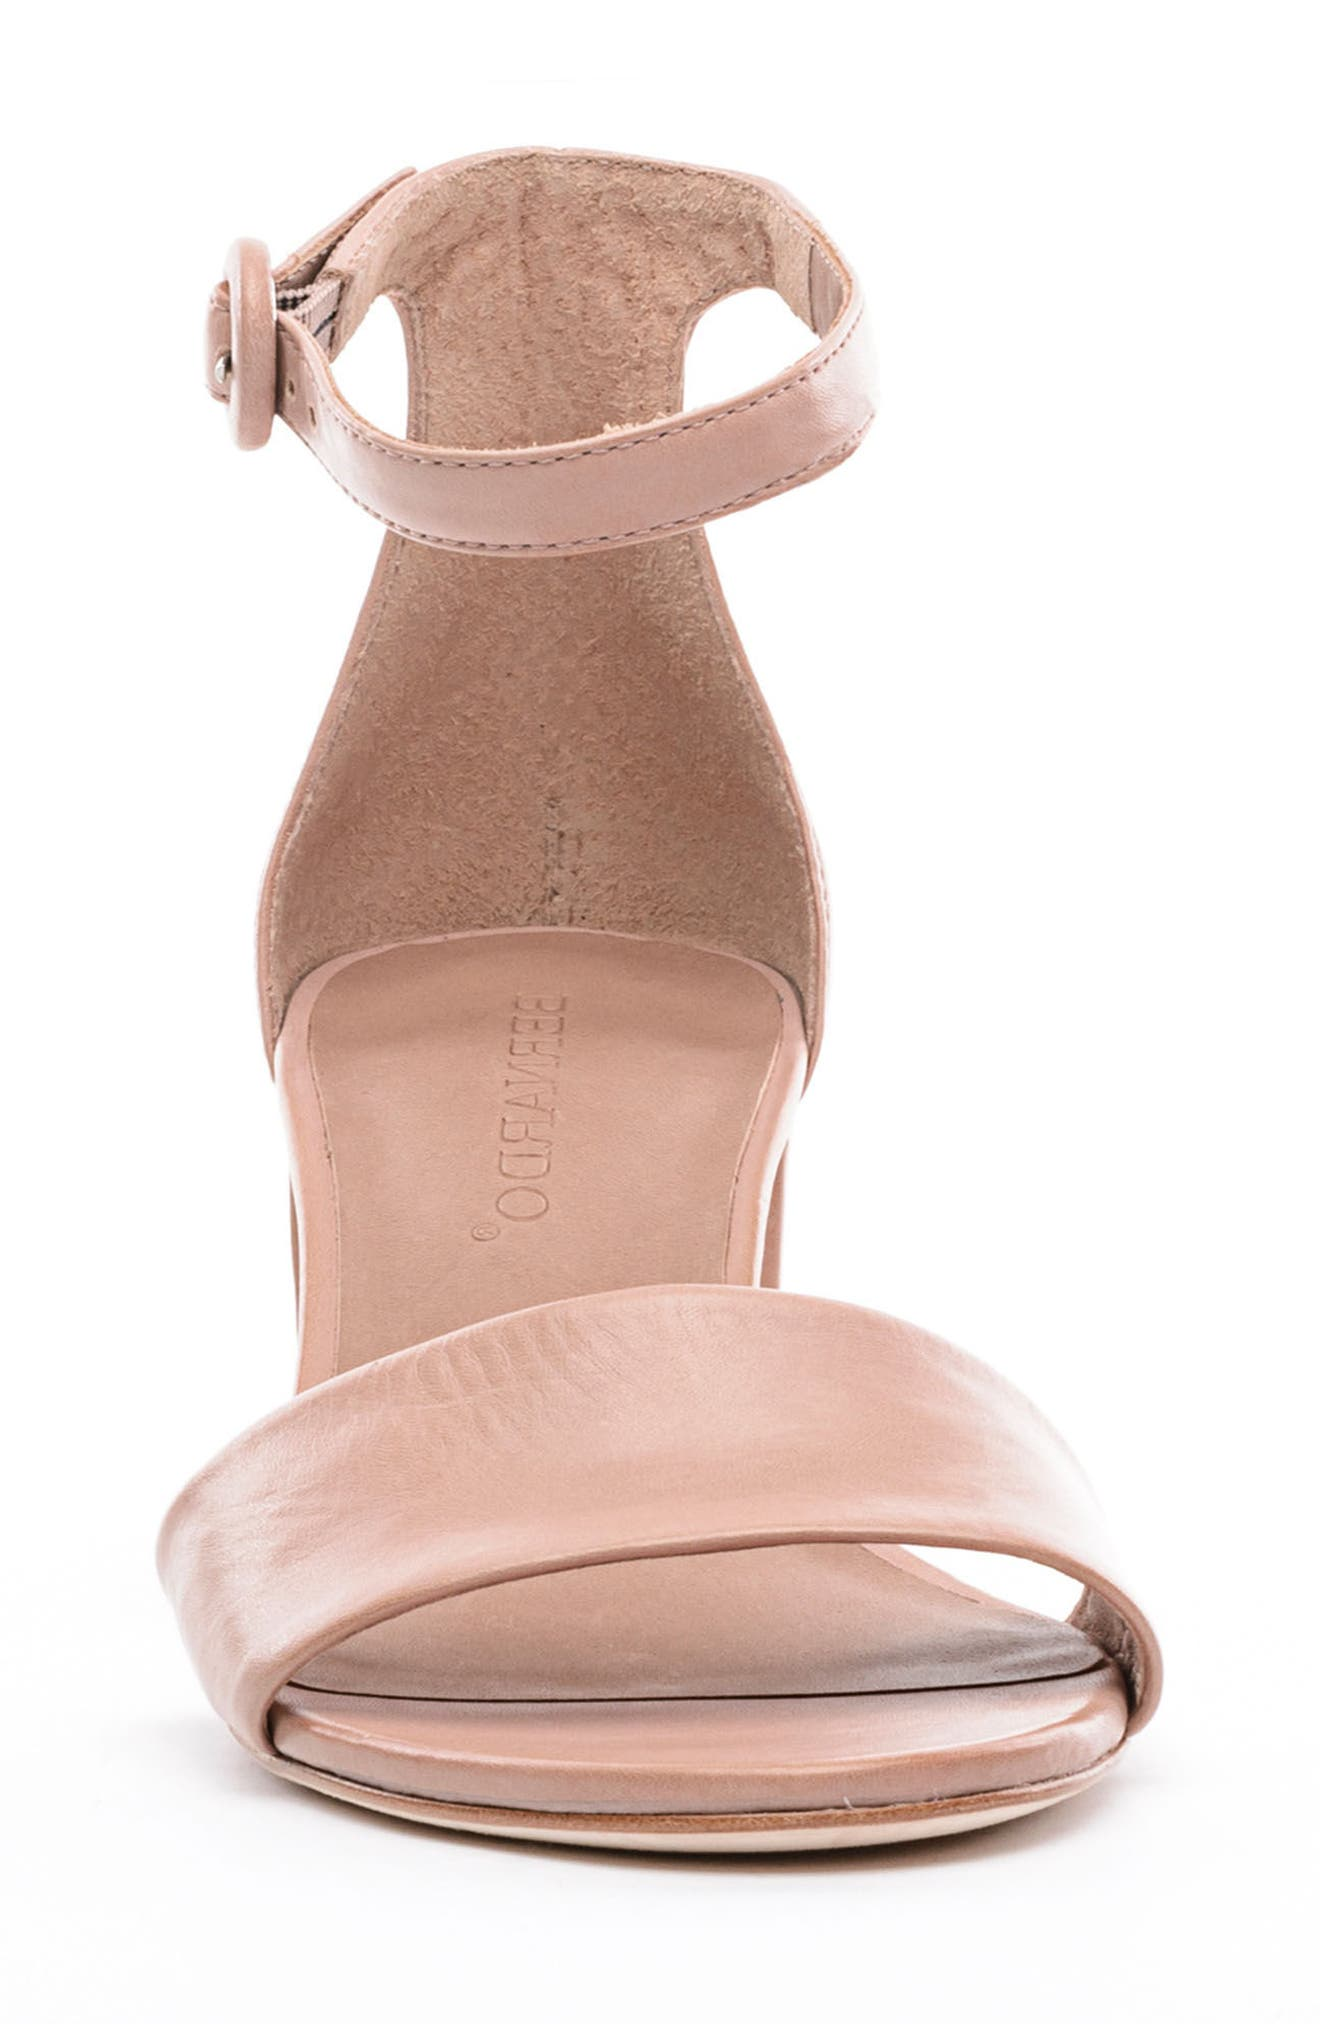 BERNARDO, Belinda Ankle Strap Sandal, Alternate thumbnail 4, color, BLUSH LEATHER